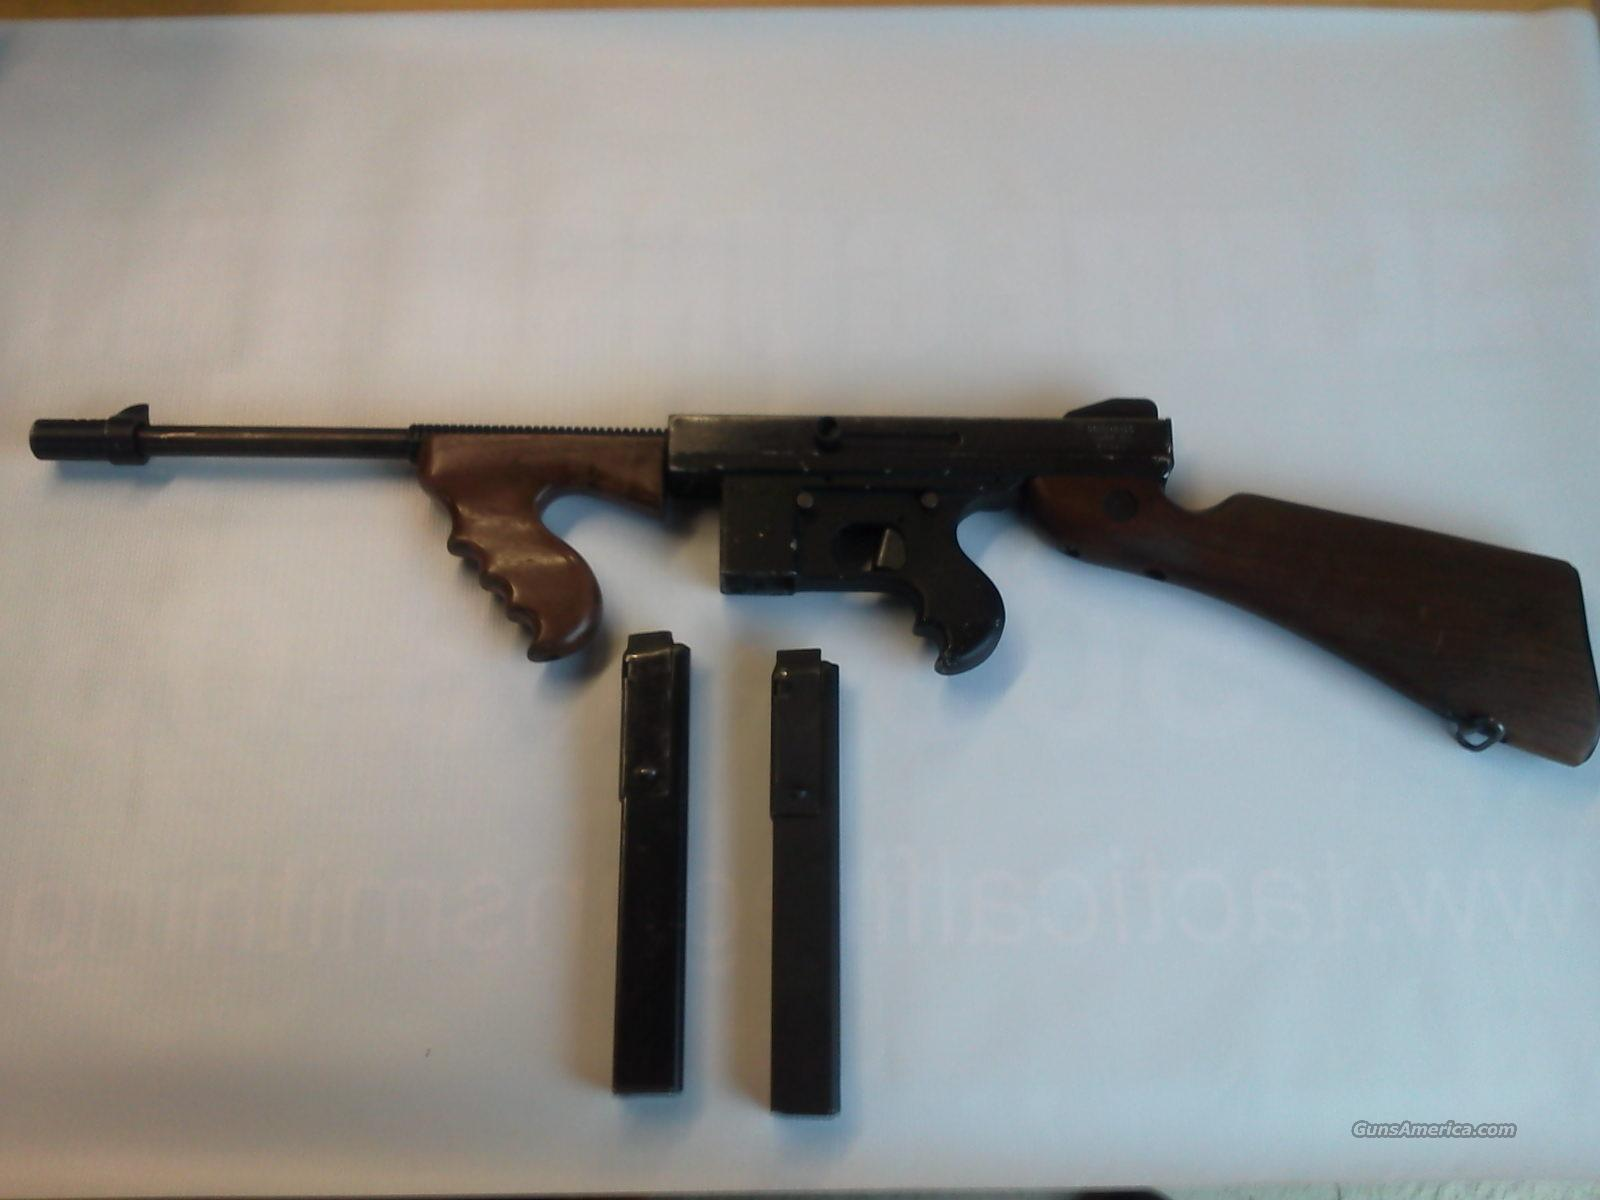 Volunteer Enterprises Inc $750 OBO  Guns > Rifles > Thompson Subguns/Semi-Auto